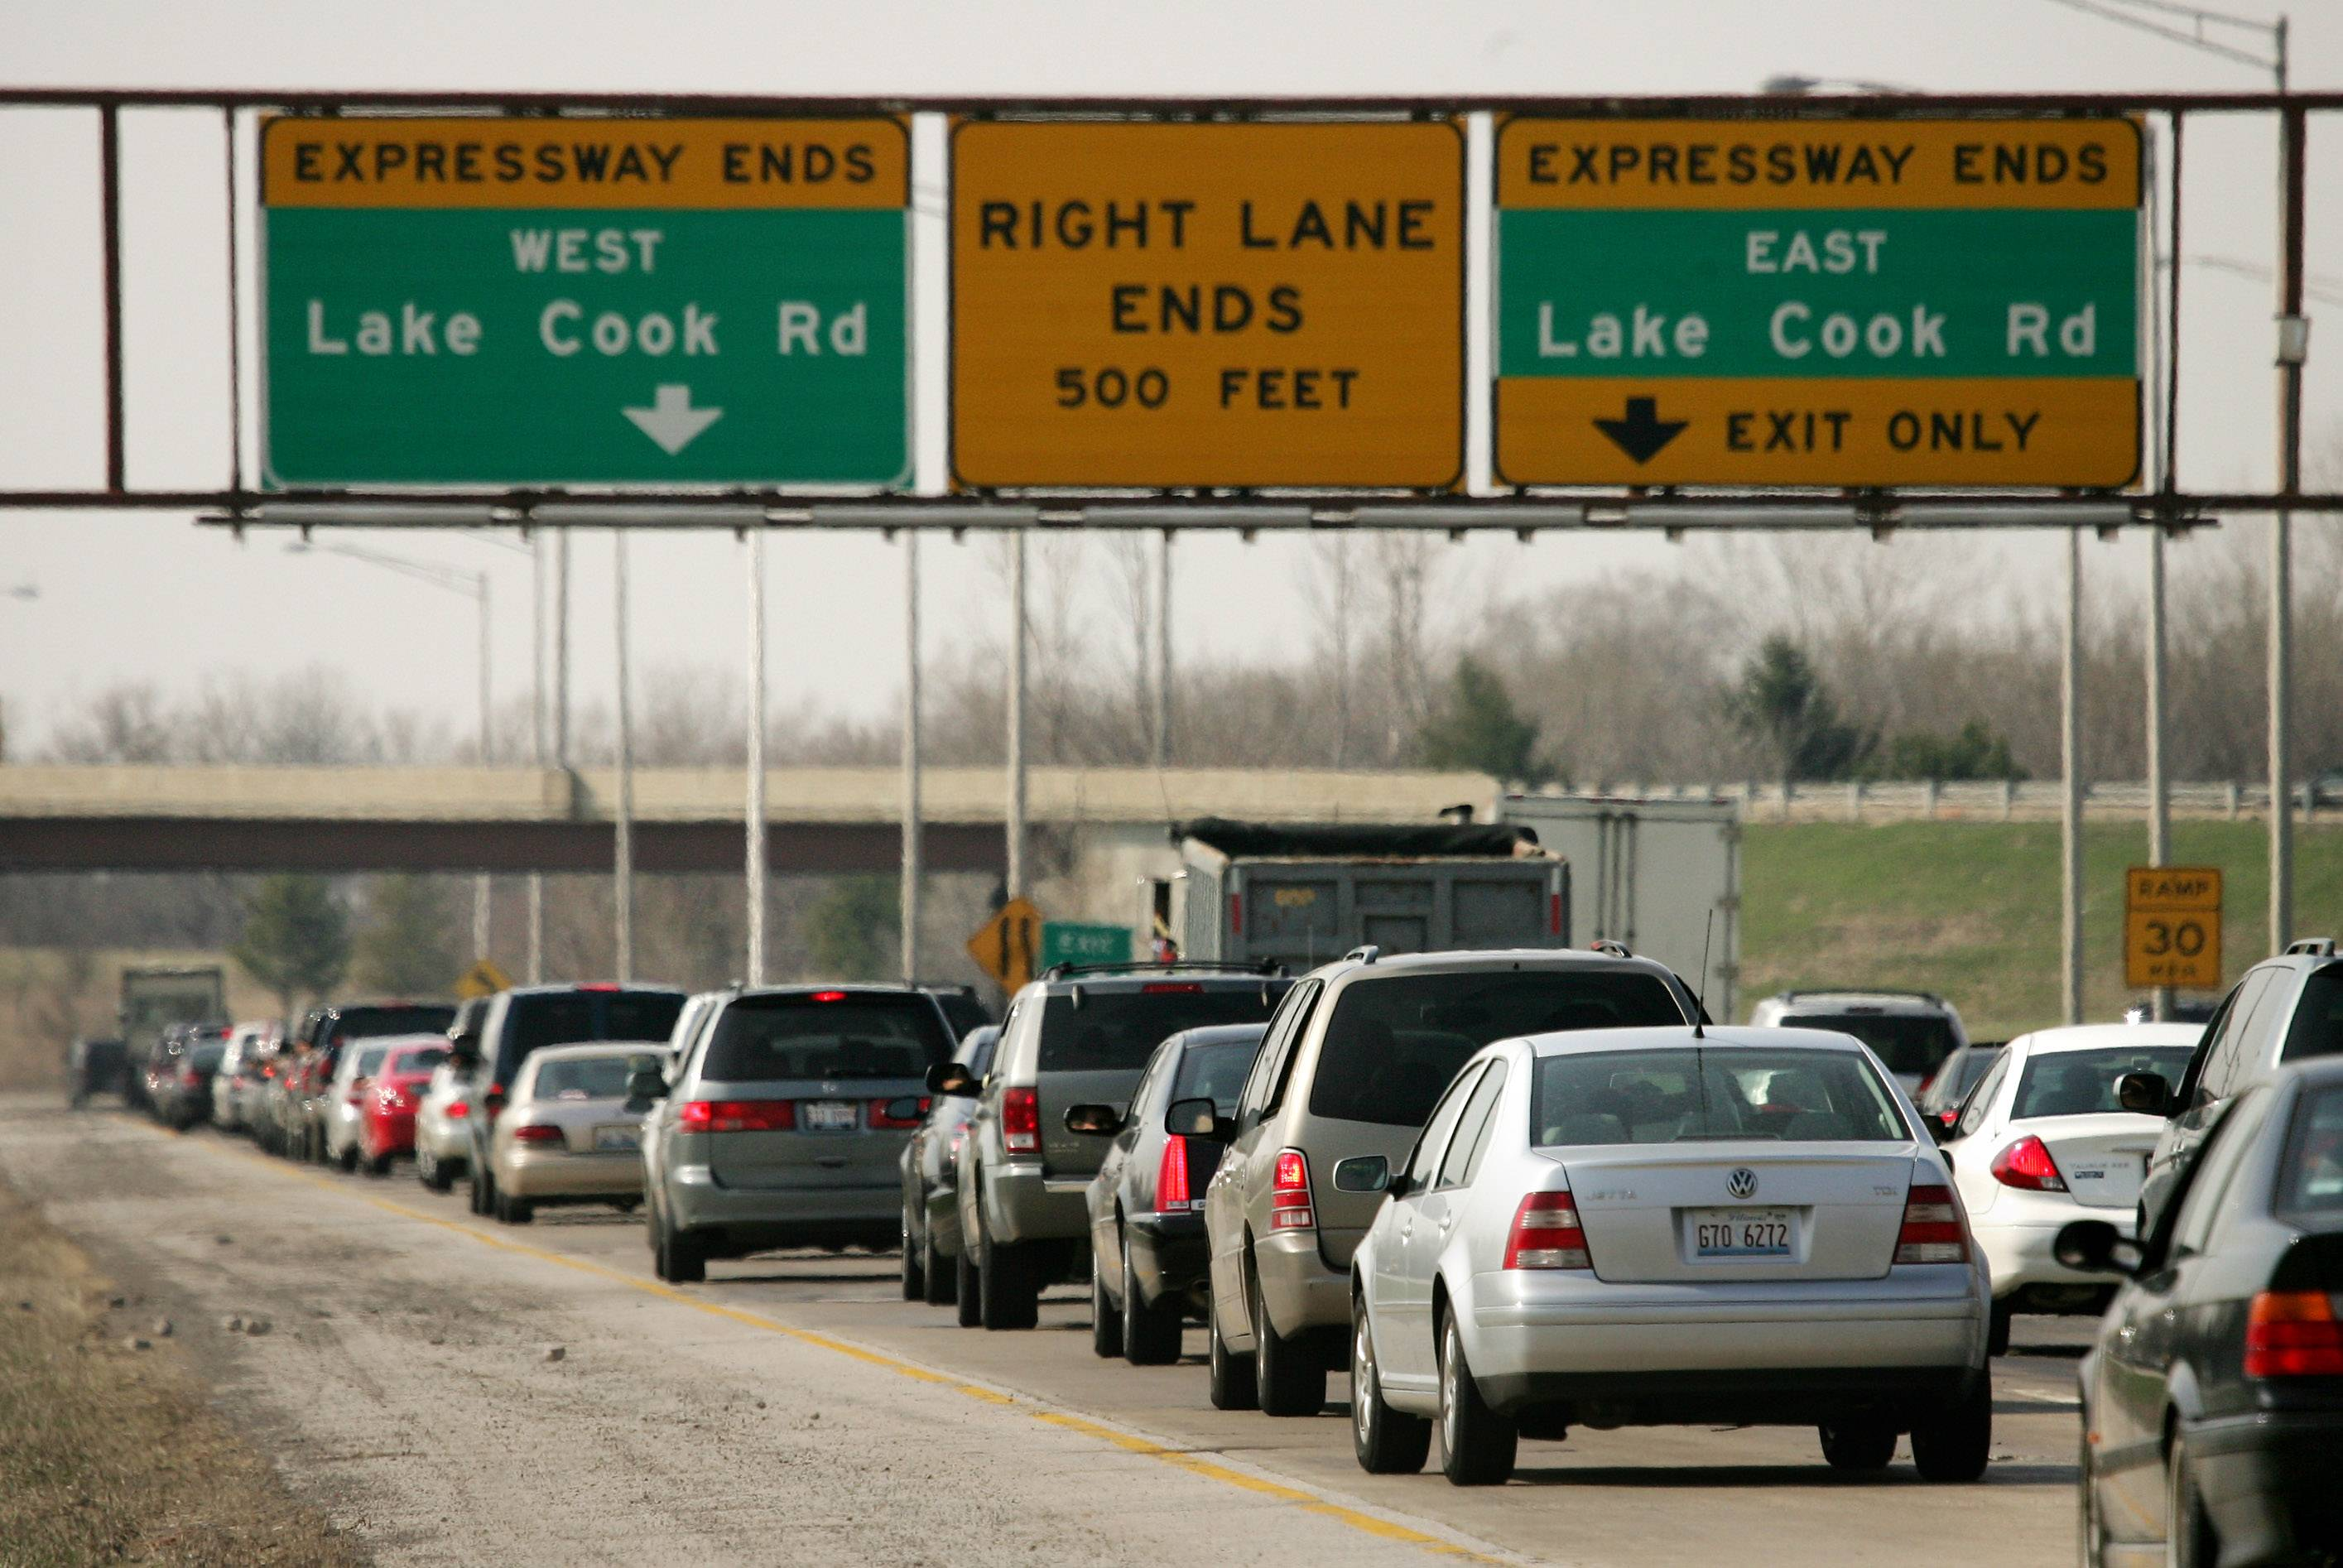 Work continues on a $25 million study of extending Route 53 north in to Lake County despite turnover at the Illinois tollway and governor's mansion. Route 53 ends near the Cook County border.